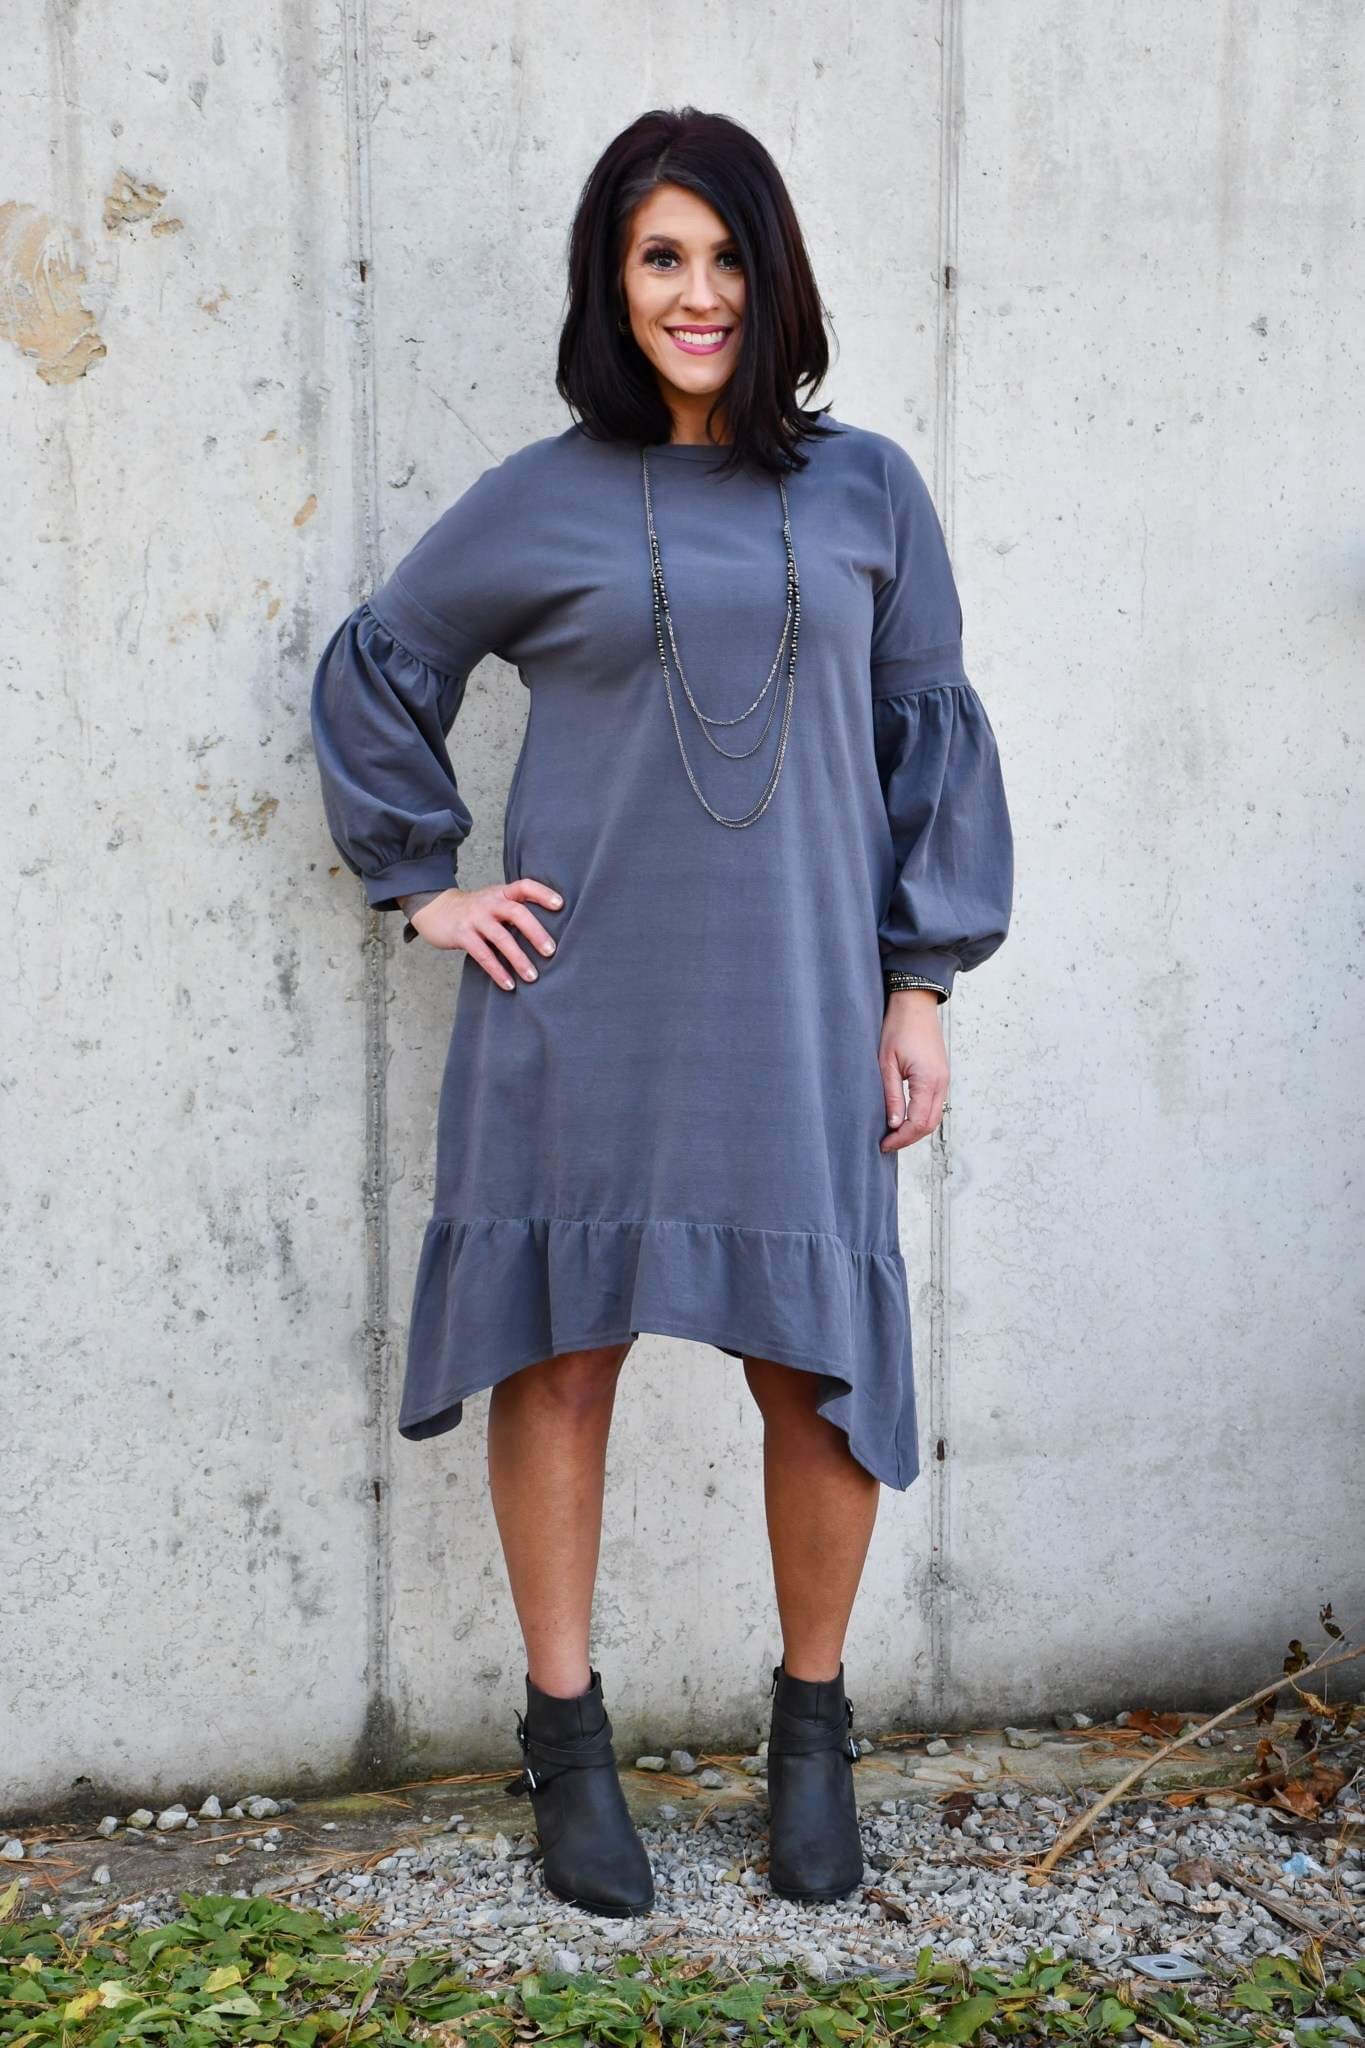 Slate Knit Dress Balloon Sleeve Ruffle Hem - Tallulah Rose Boutique